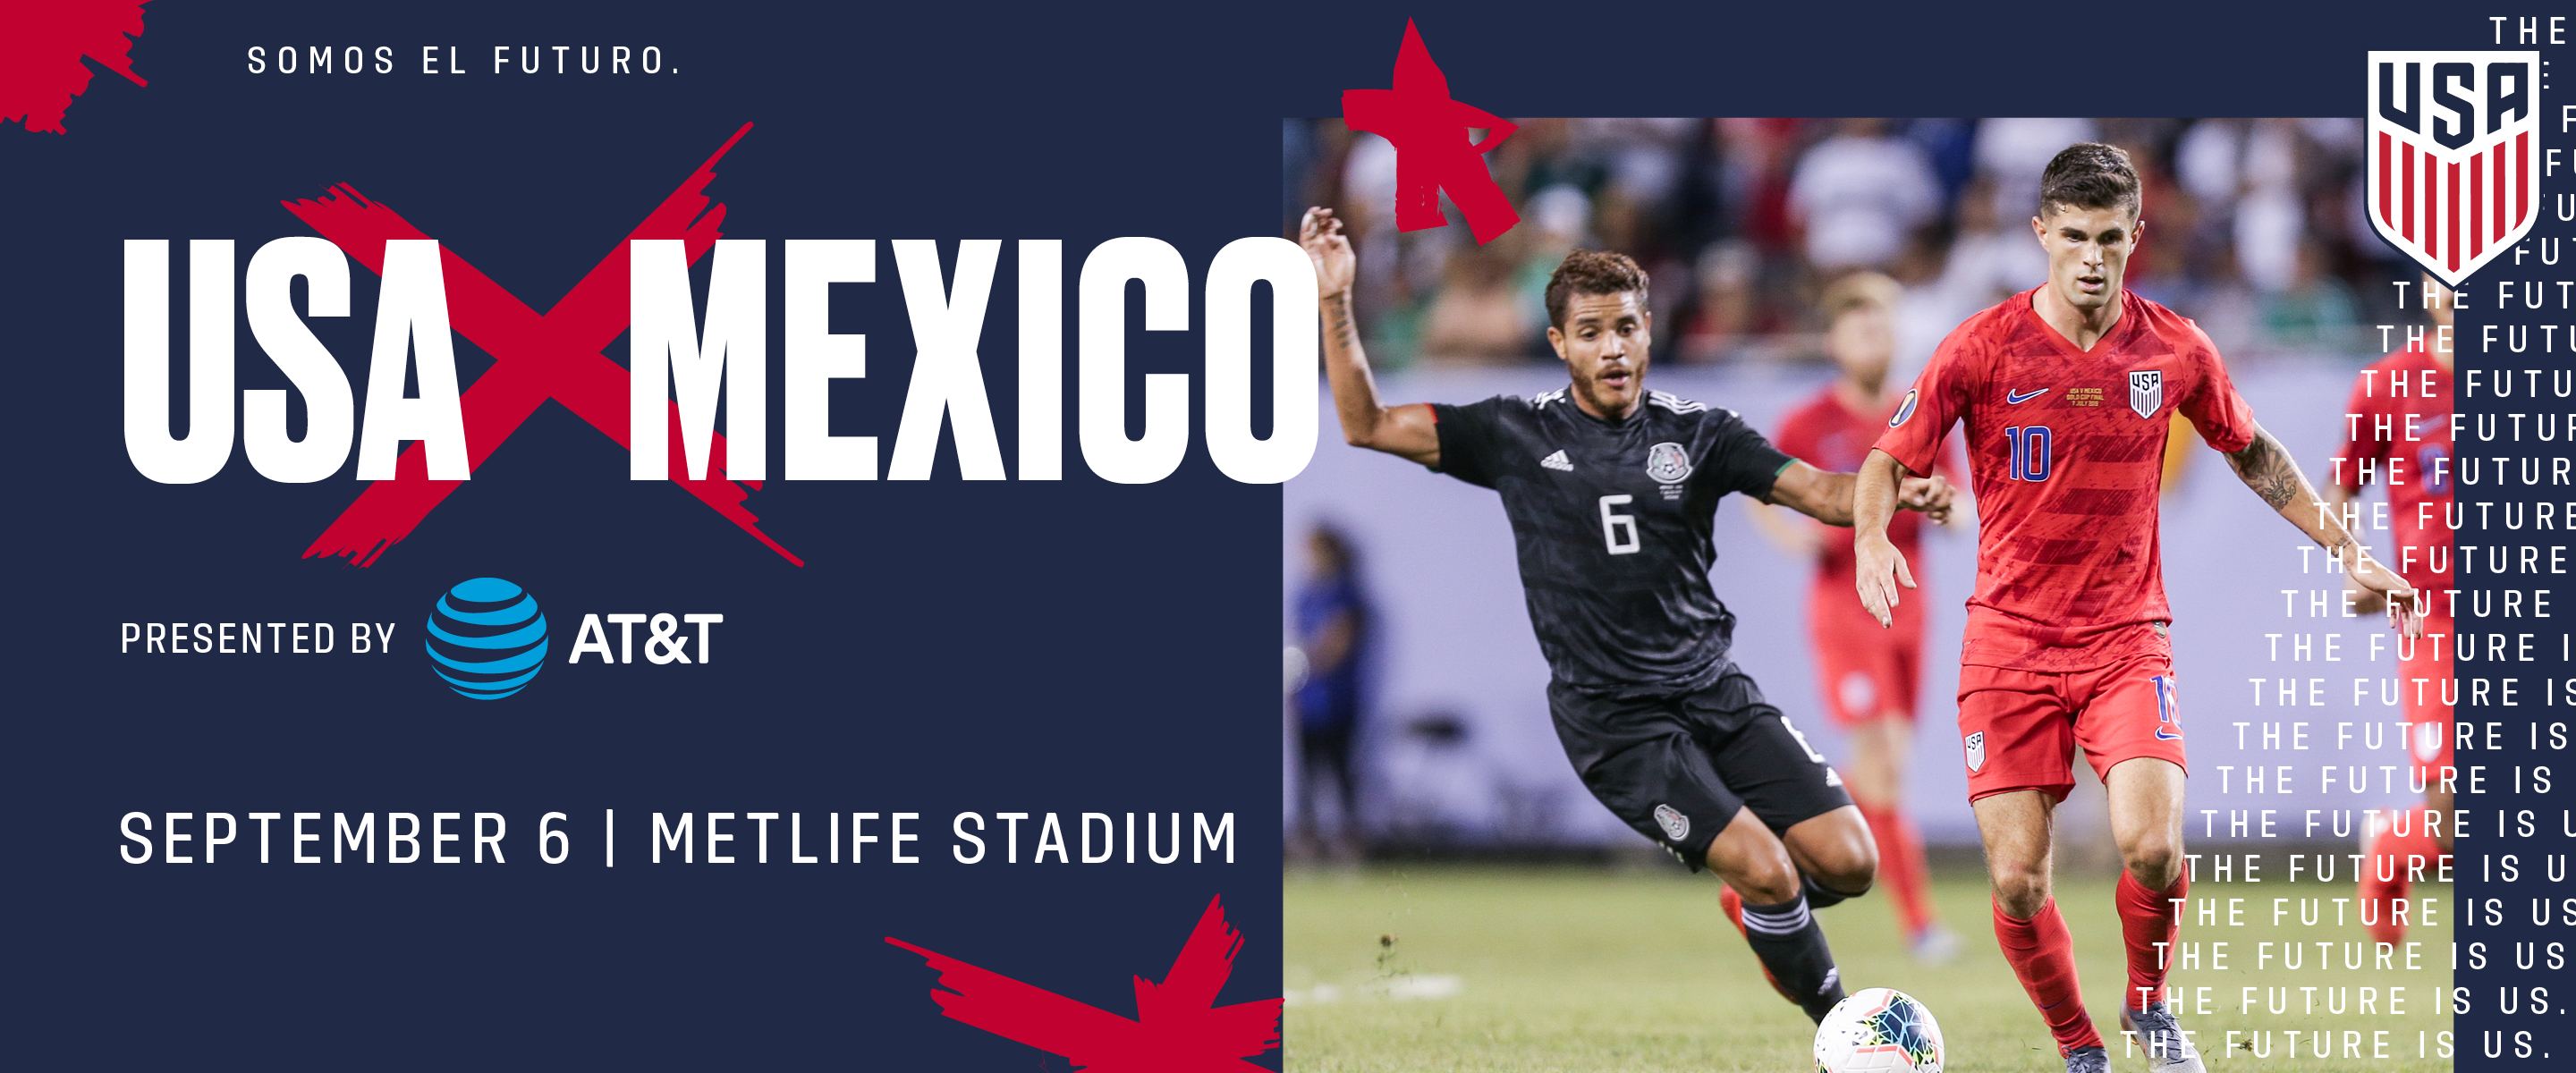 USA vs Mexico Announced – MetLife on Sept. 6th - Tickets on Sale July 16th – Presented by AT&T